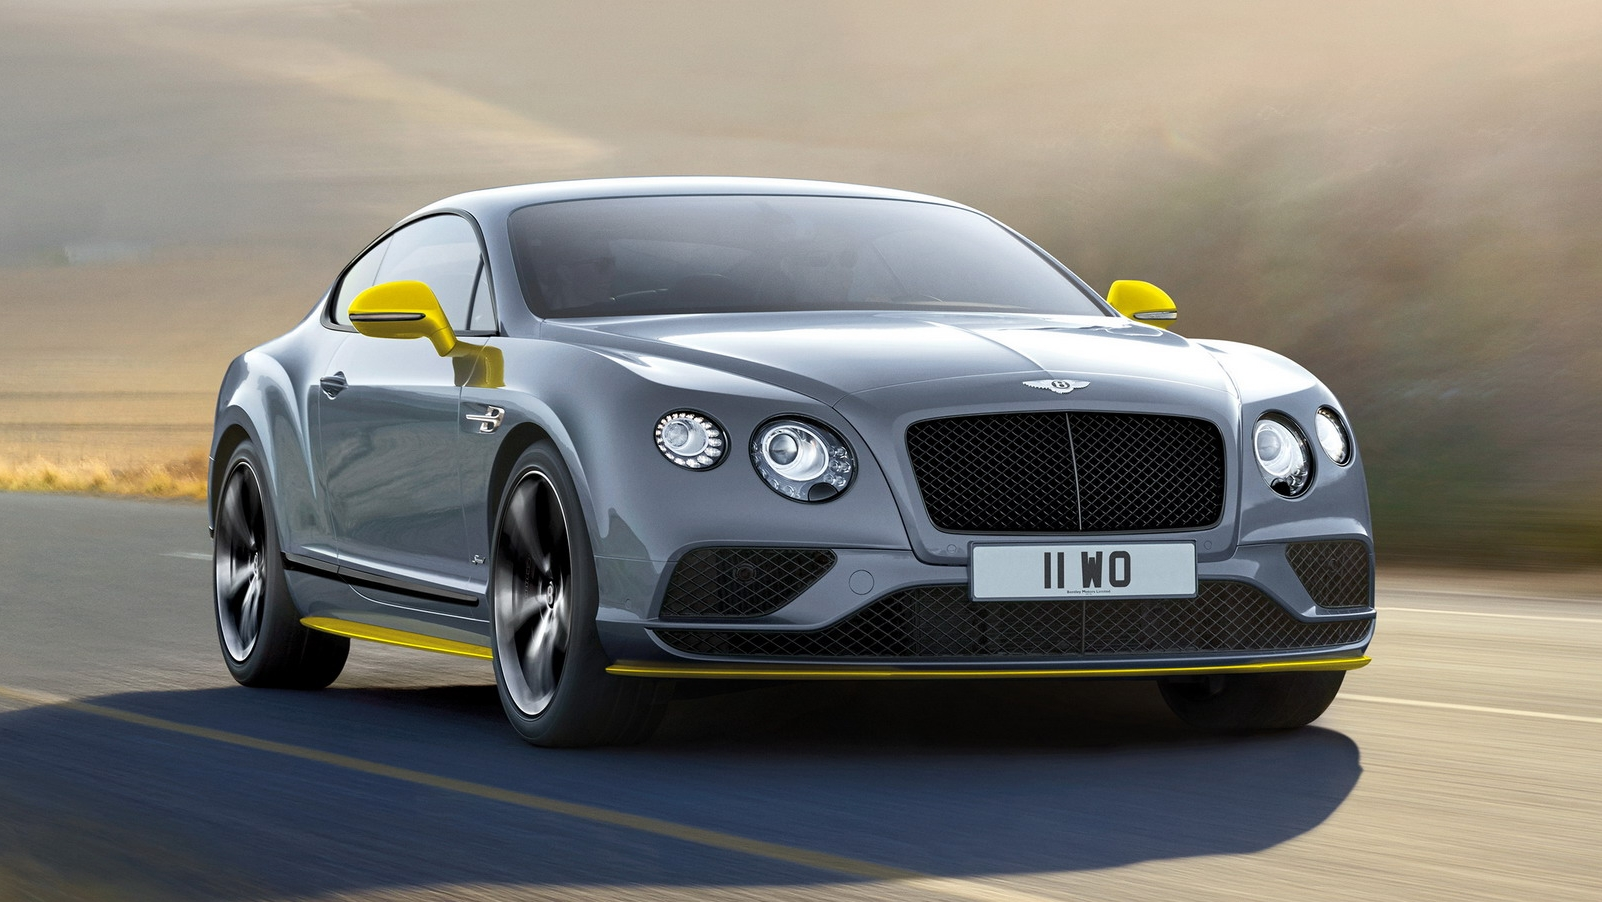 price driver reviews original and convertible car continental drive supersports bentley gt two door review photo first s photos specs